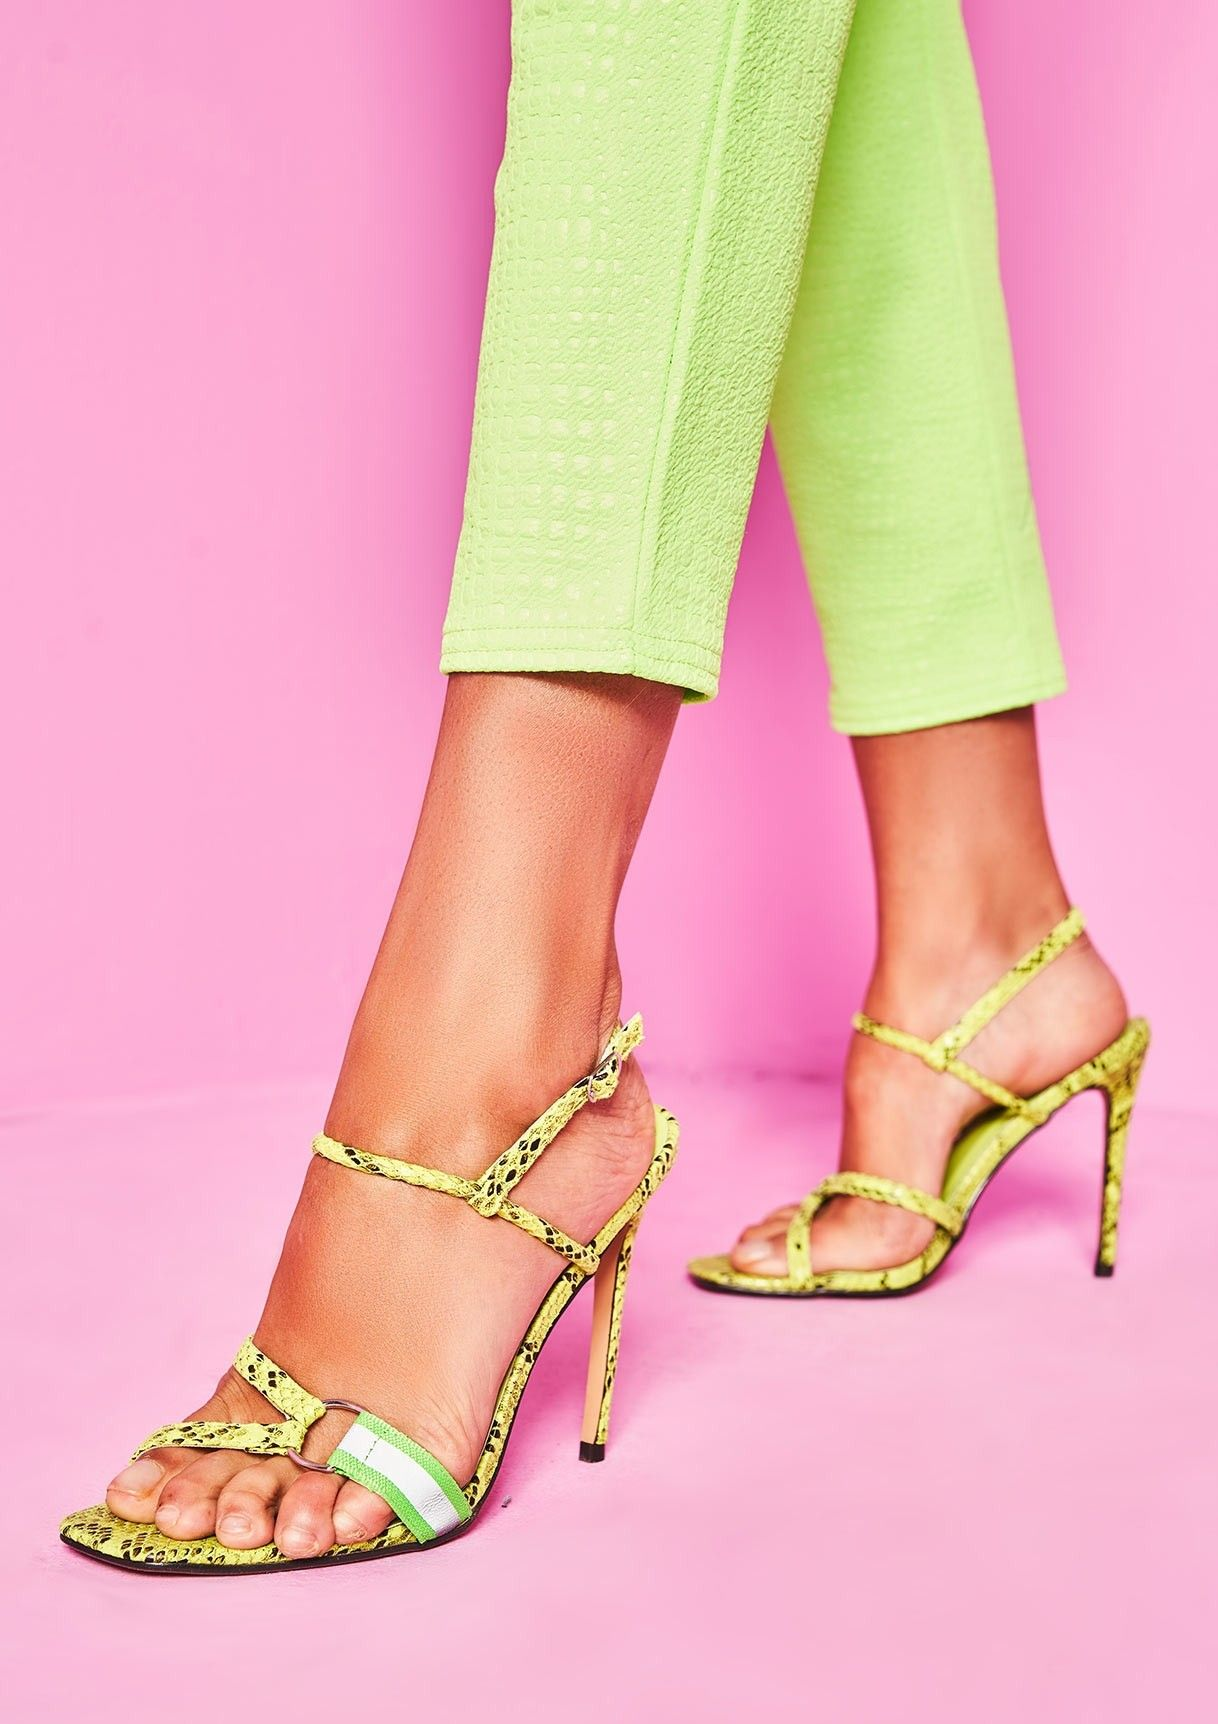 be03c8c9cb500 Zara Lime Green Snake Print Strappy Heels in 2019 | ⚡ comin' in ...